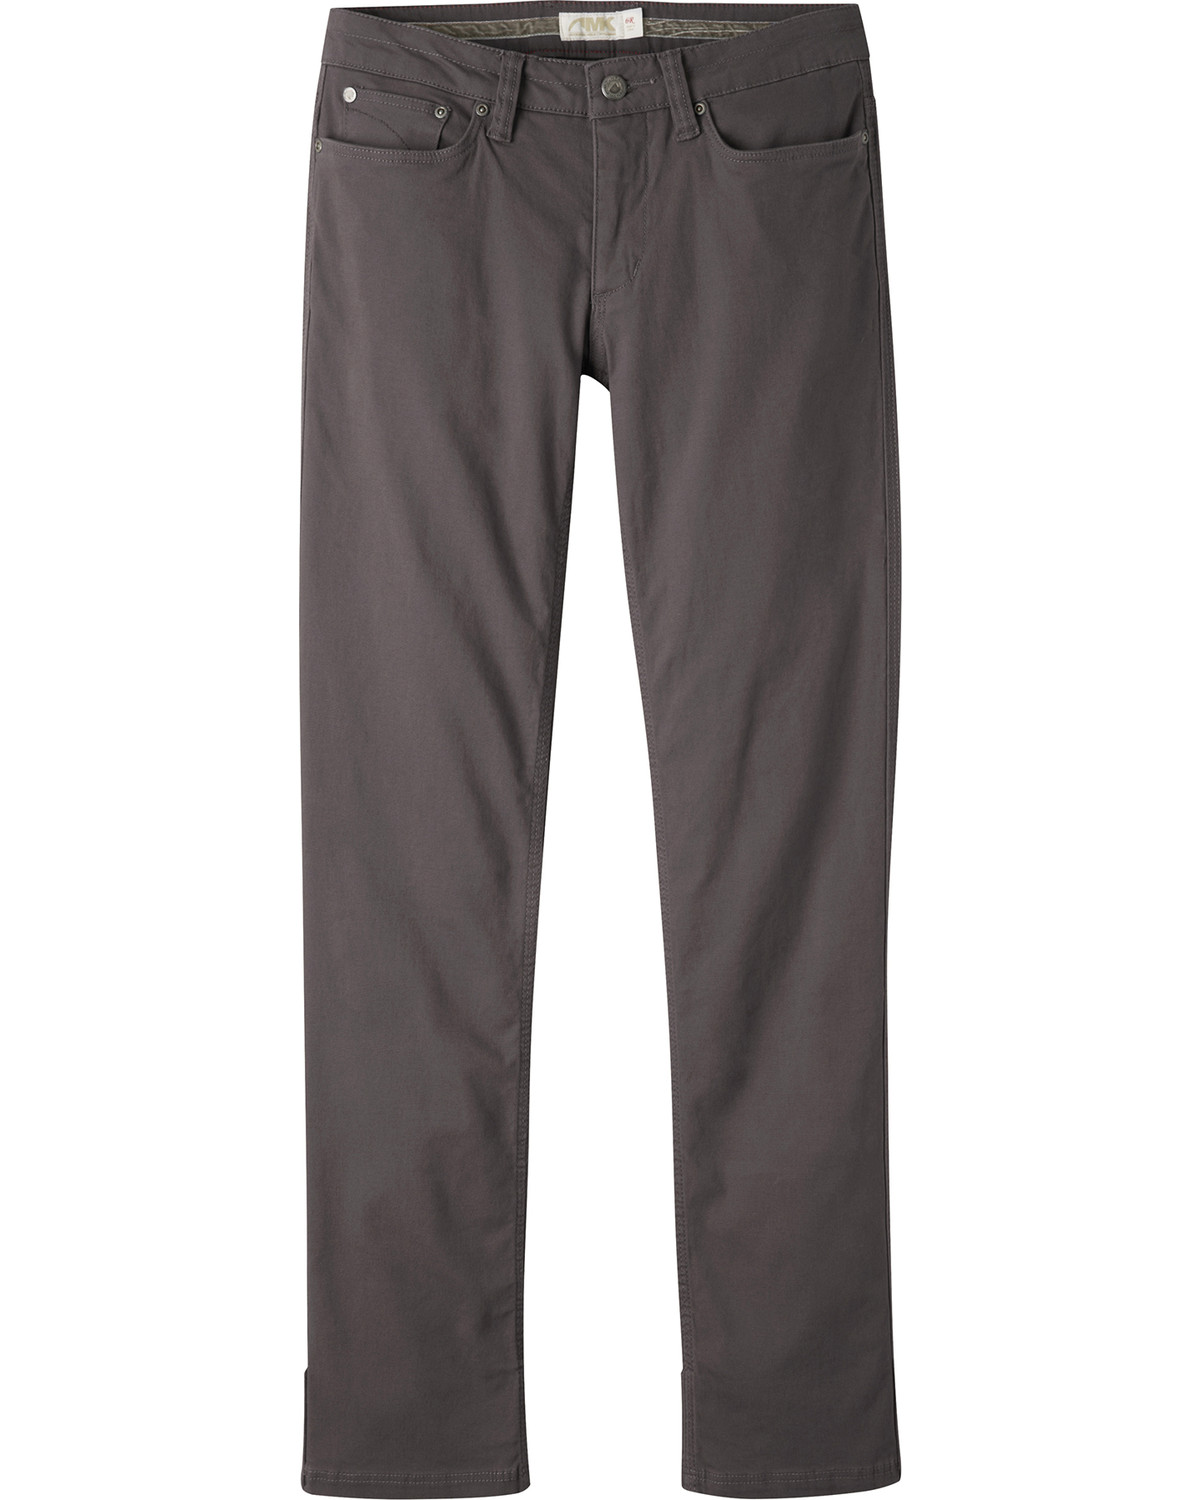 5d4936ec472f Zoomed Image Mountain Khakis Women's Classic Fit Camber 106 Pants, , hi-res